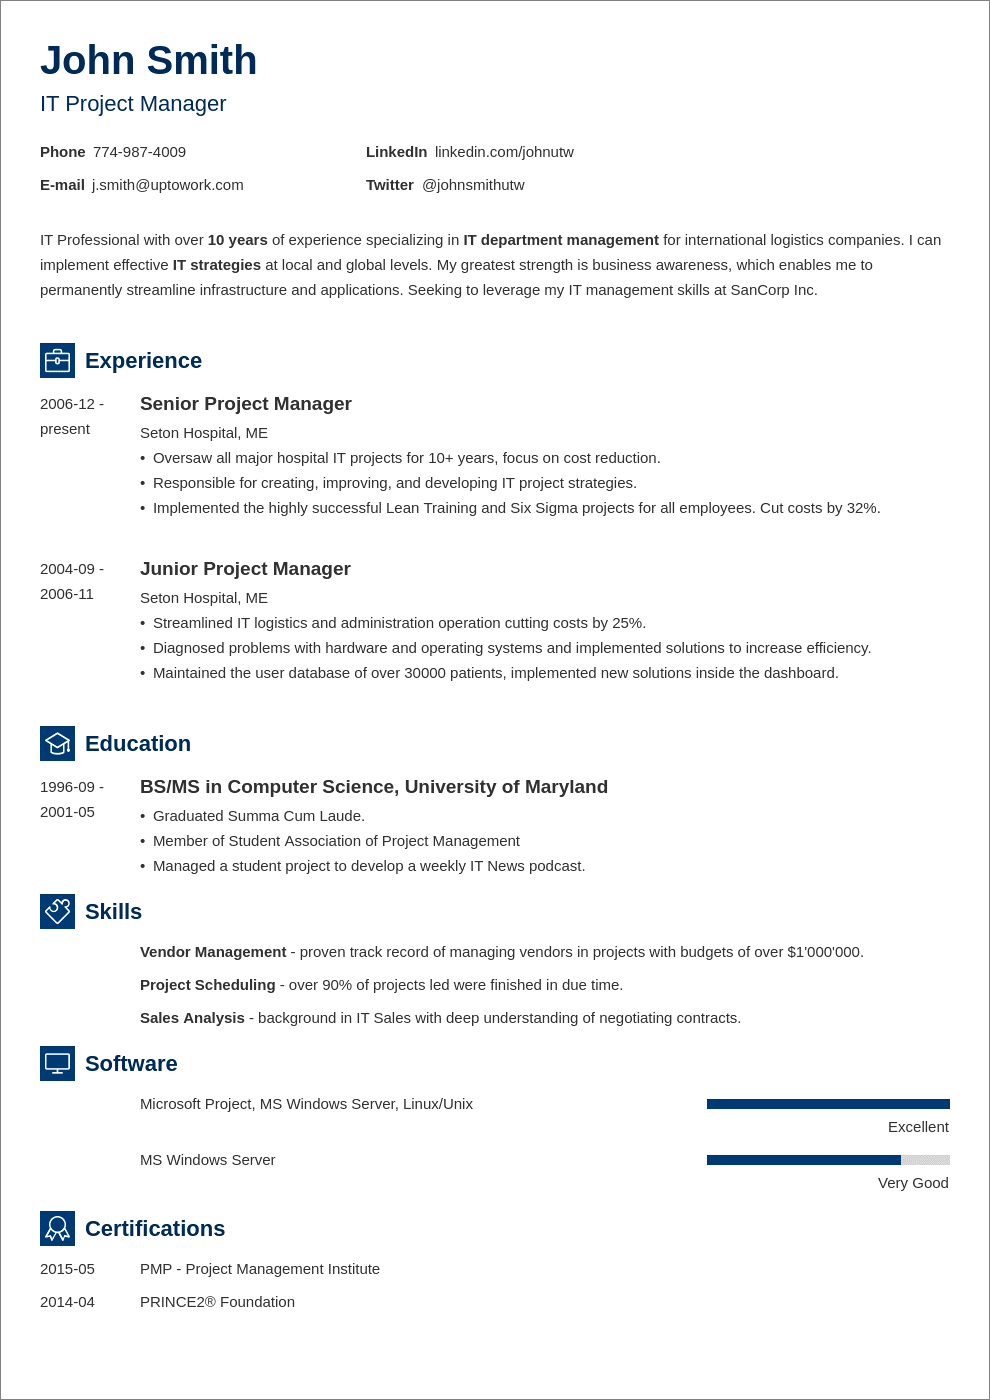 Ats, short for applicant tracking system, is a software program that scans all the words in your resume and applies an algorithm to search for keywords to determine if you are an appropriate candidate for the job in question. 11 Ats Friendly Resume Templates That Beat The Bots In 2021